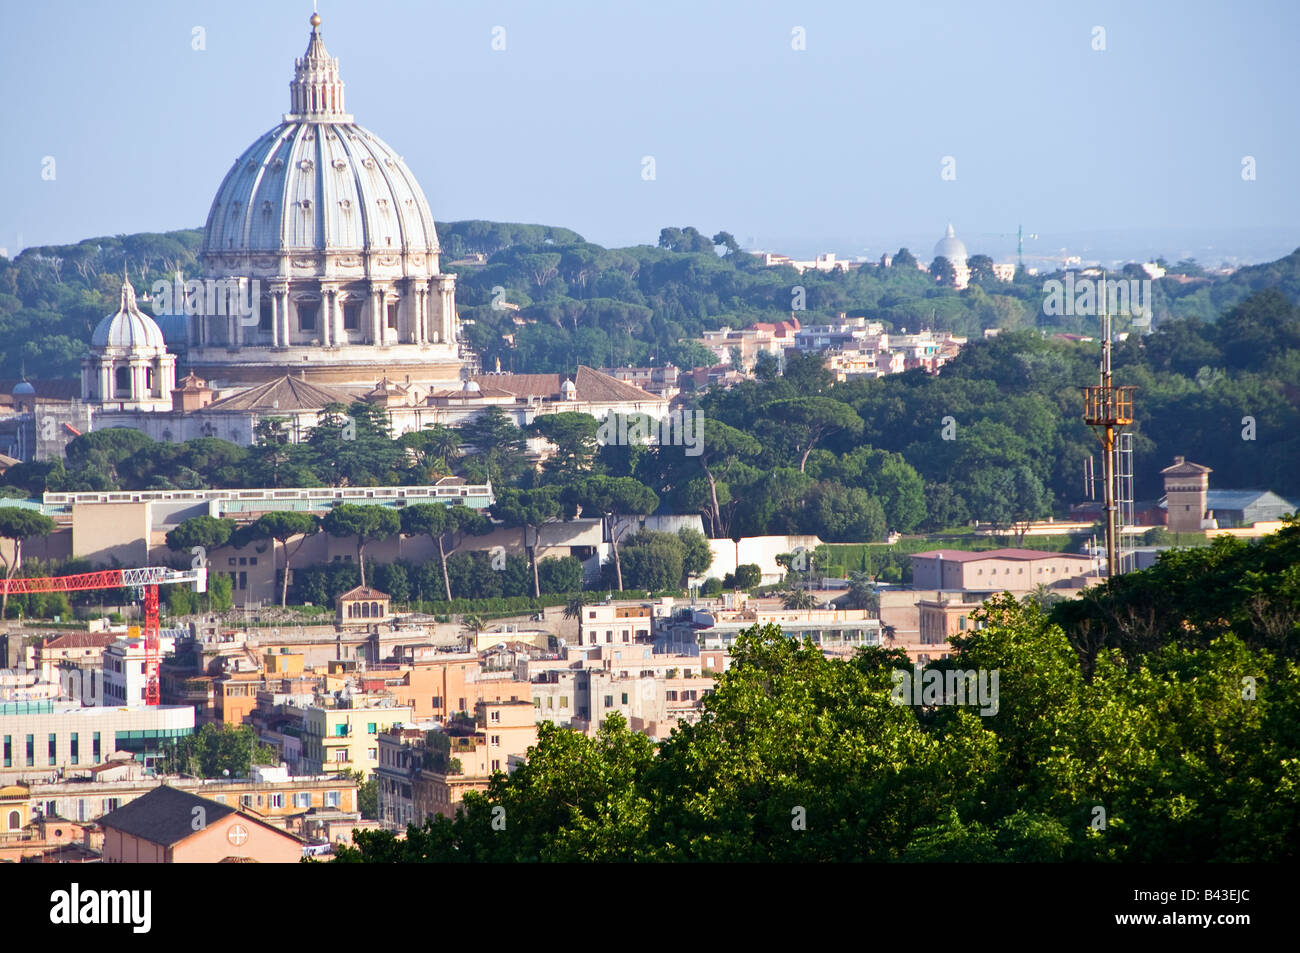 Scenic overview of Rome, Italy with Saint Peter's dome in the distance - Stock Image